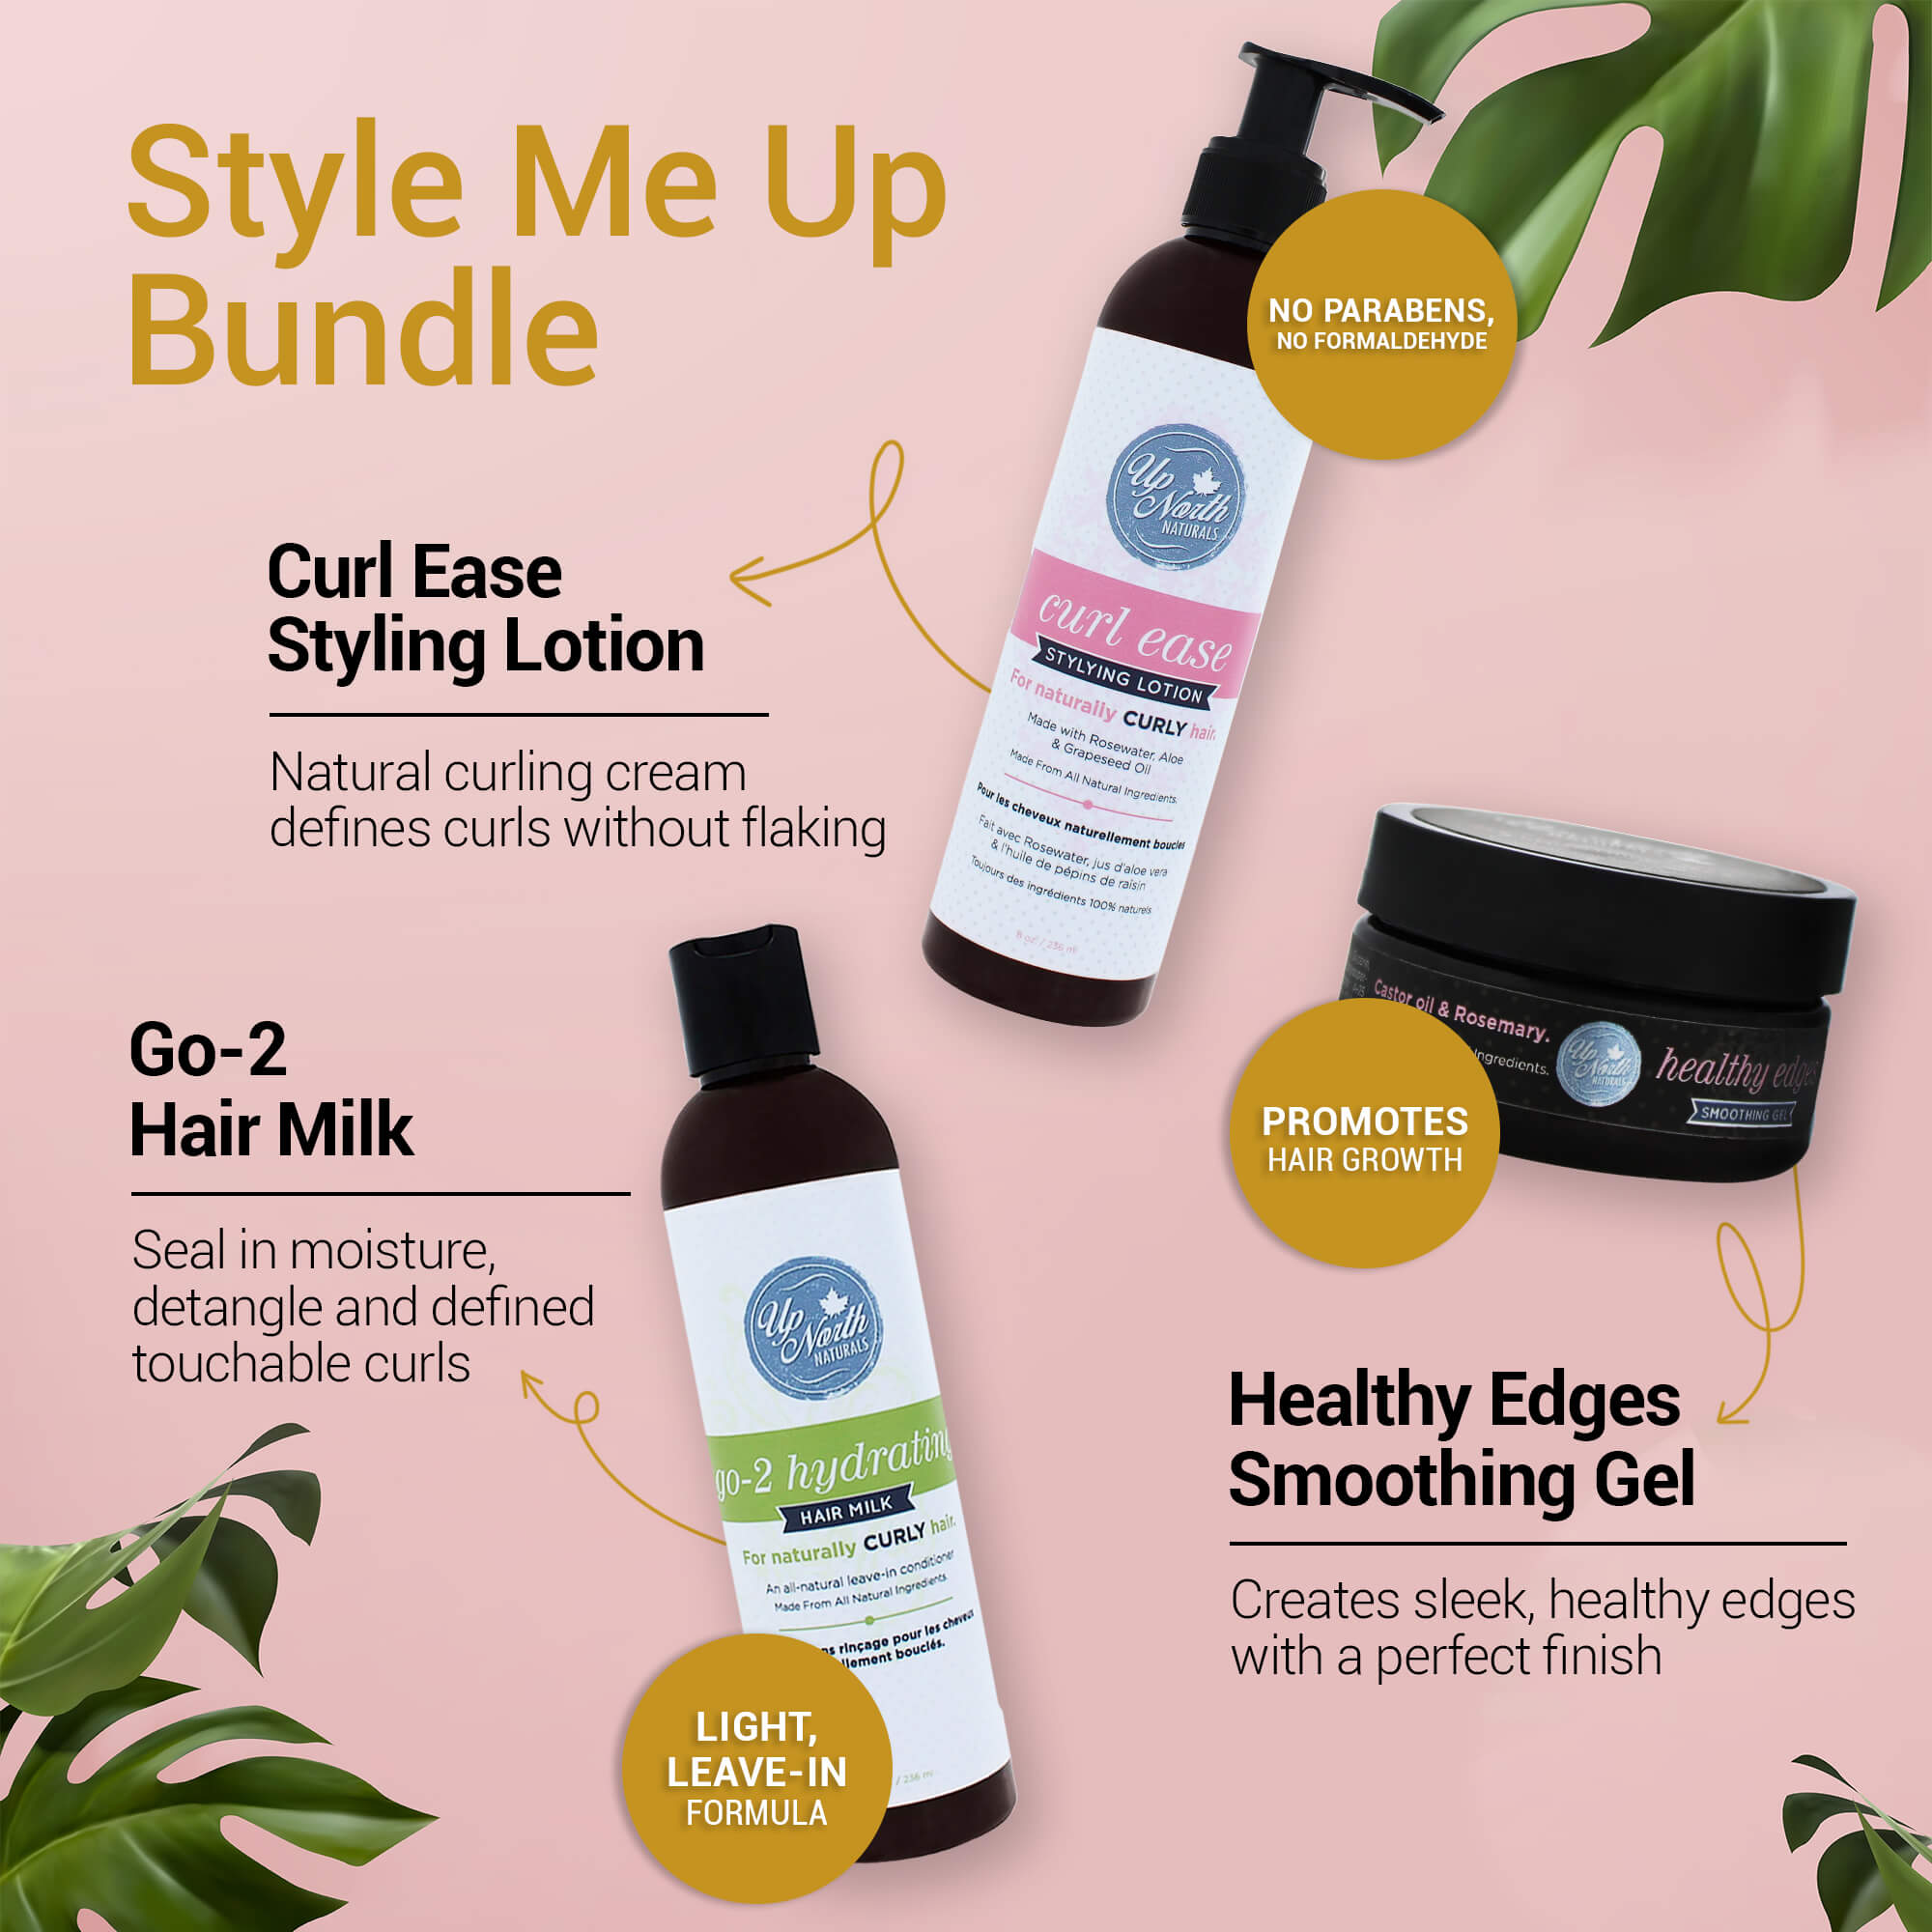 Style Me Up Bundle For Curly Hair Care Up North Naturals